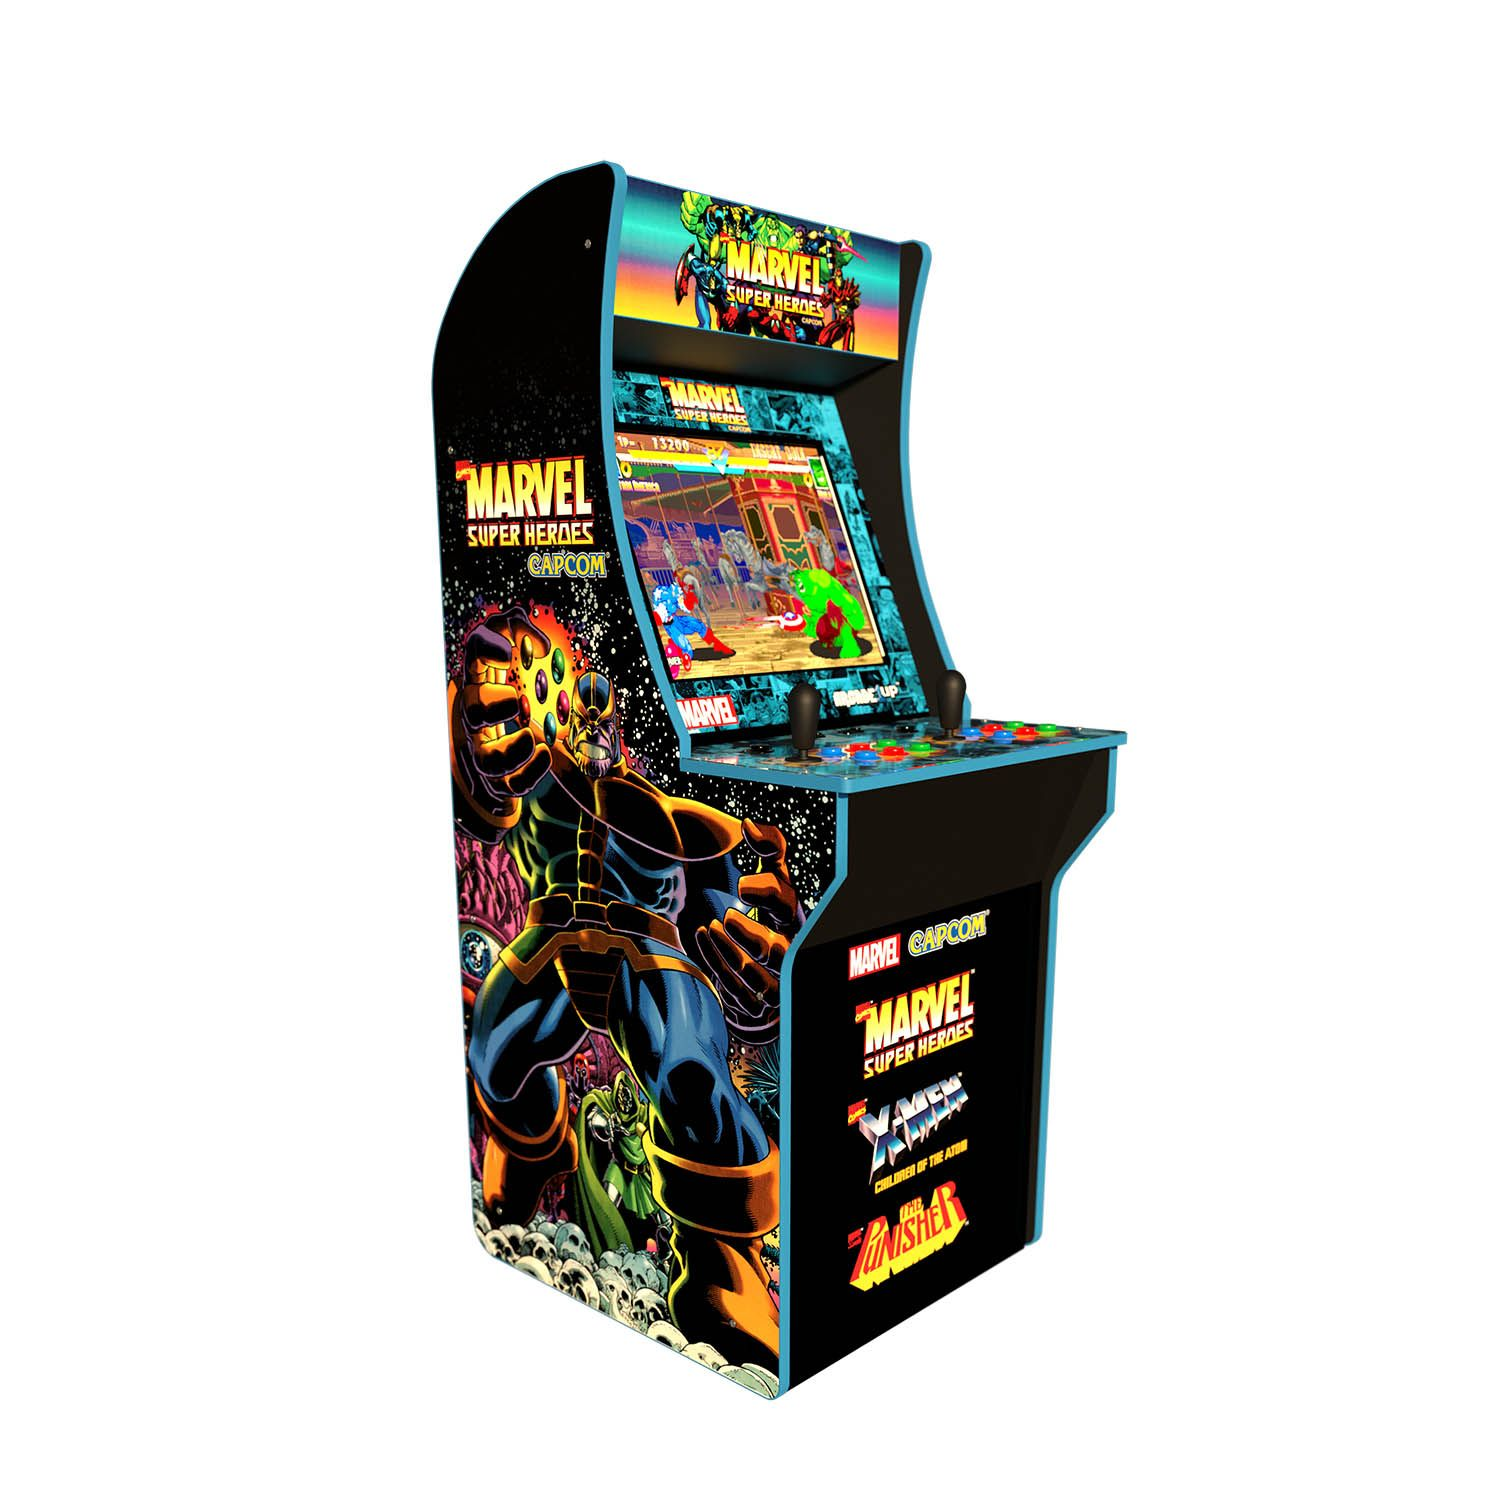 Video Games (With images) Arcade machine, Marvel superheroes